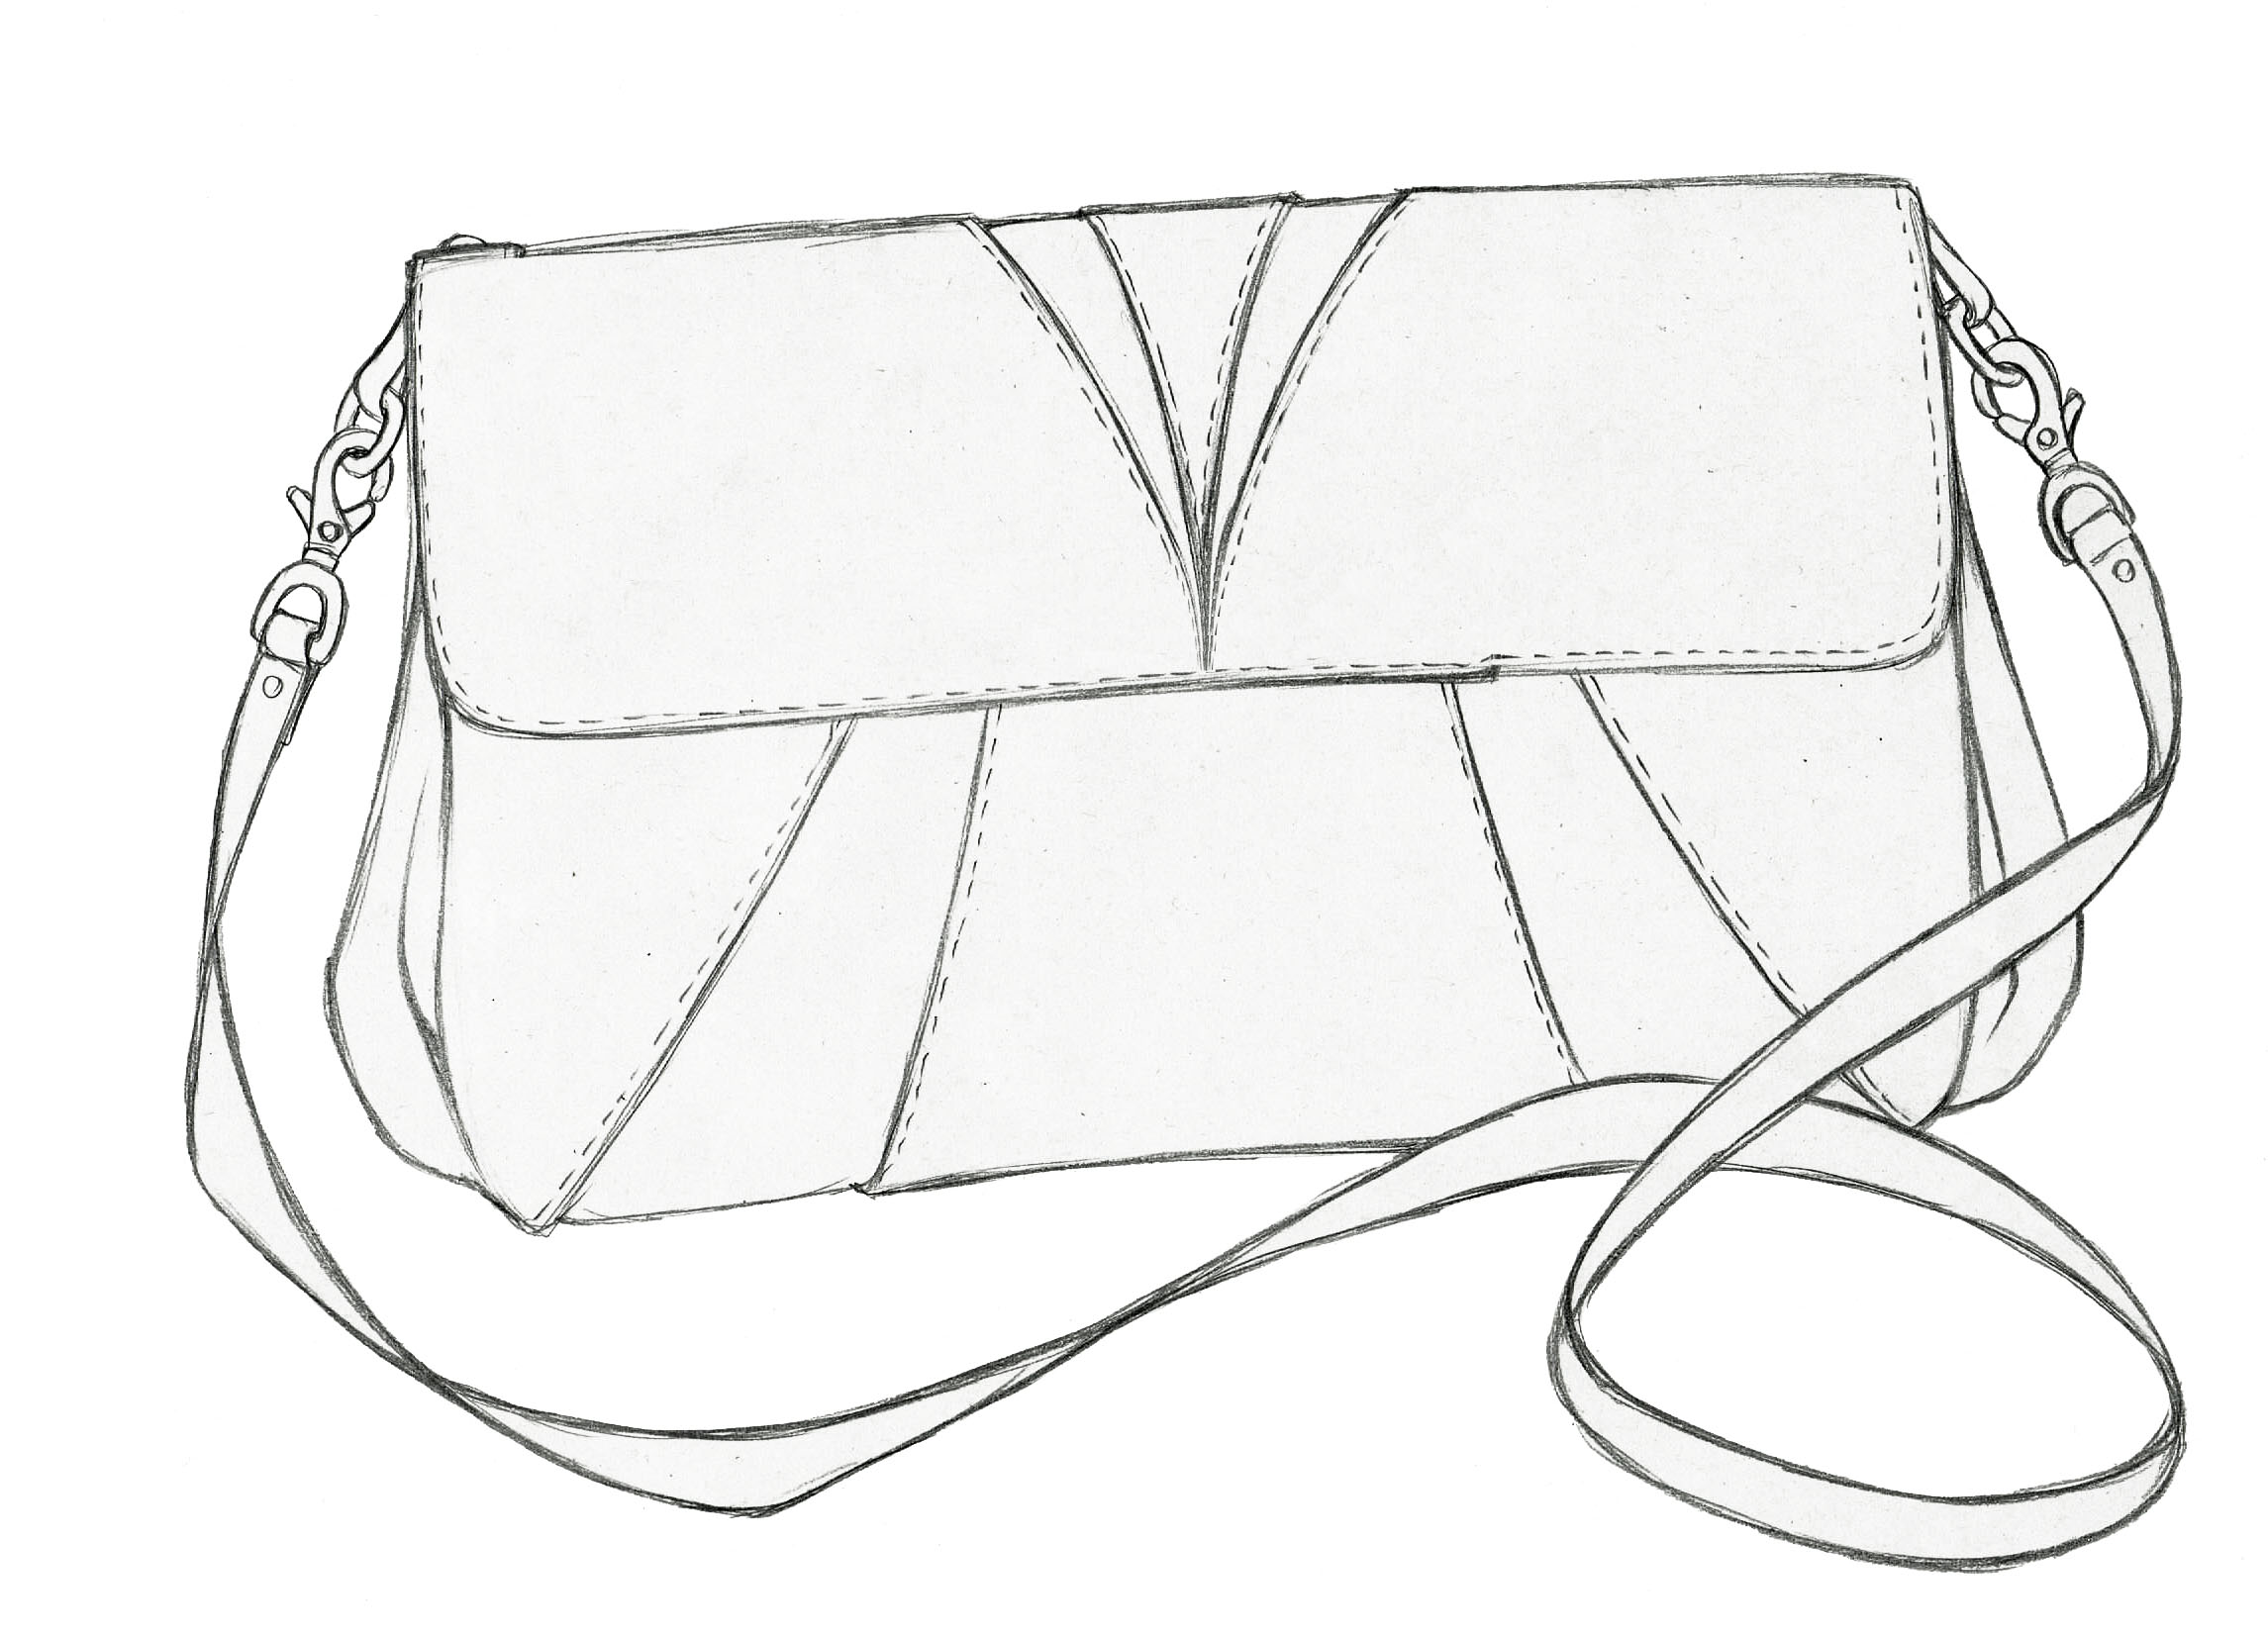 2291x1654 Small Bag B Design Small Bags, Sketches And Drawings